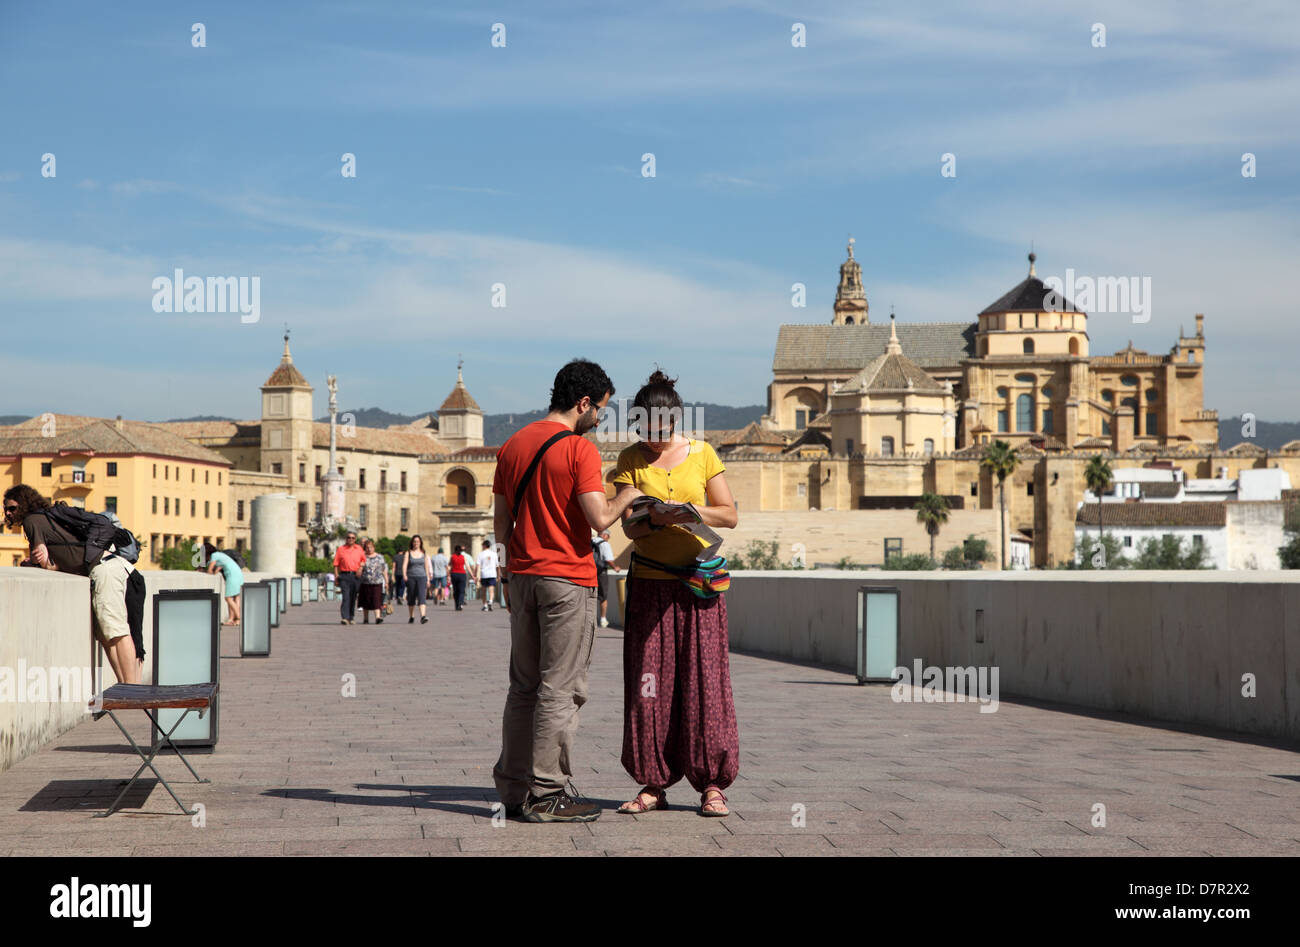 Tourists on the bridge in Cordoba, Andalusia Spain - Stock Image